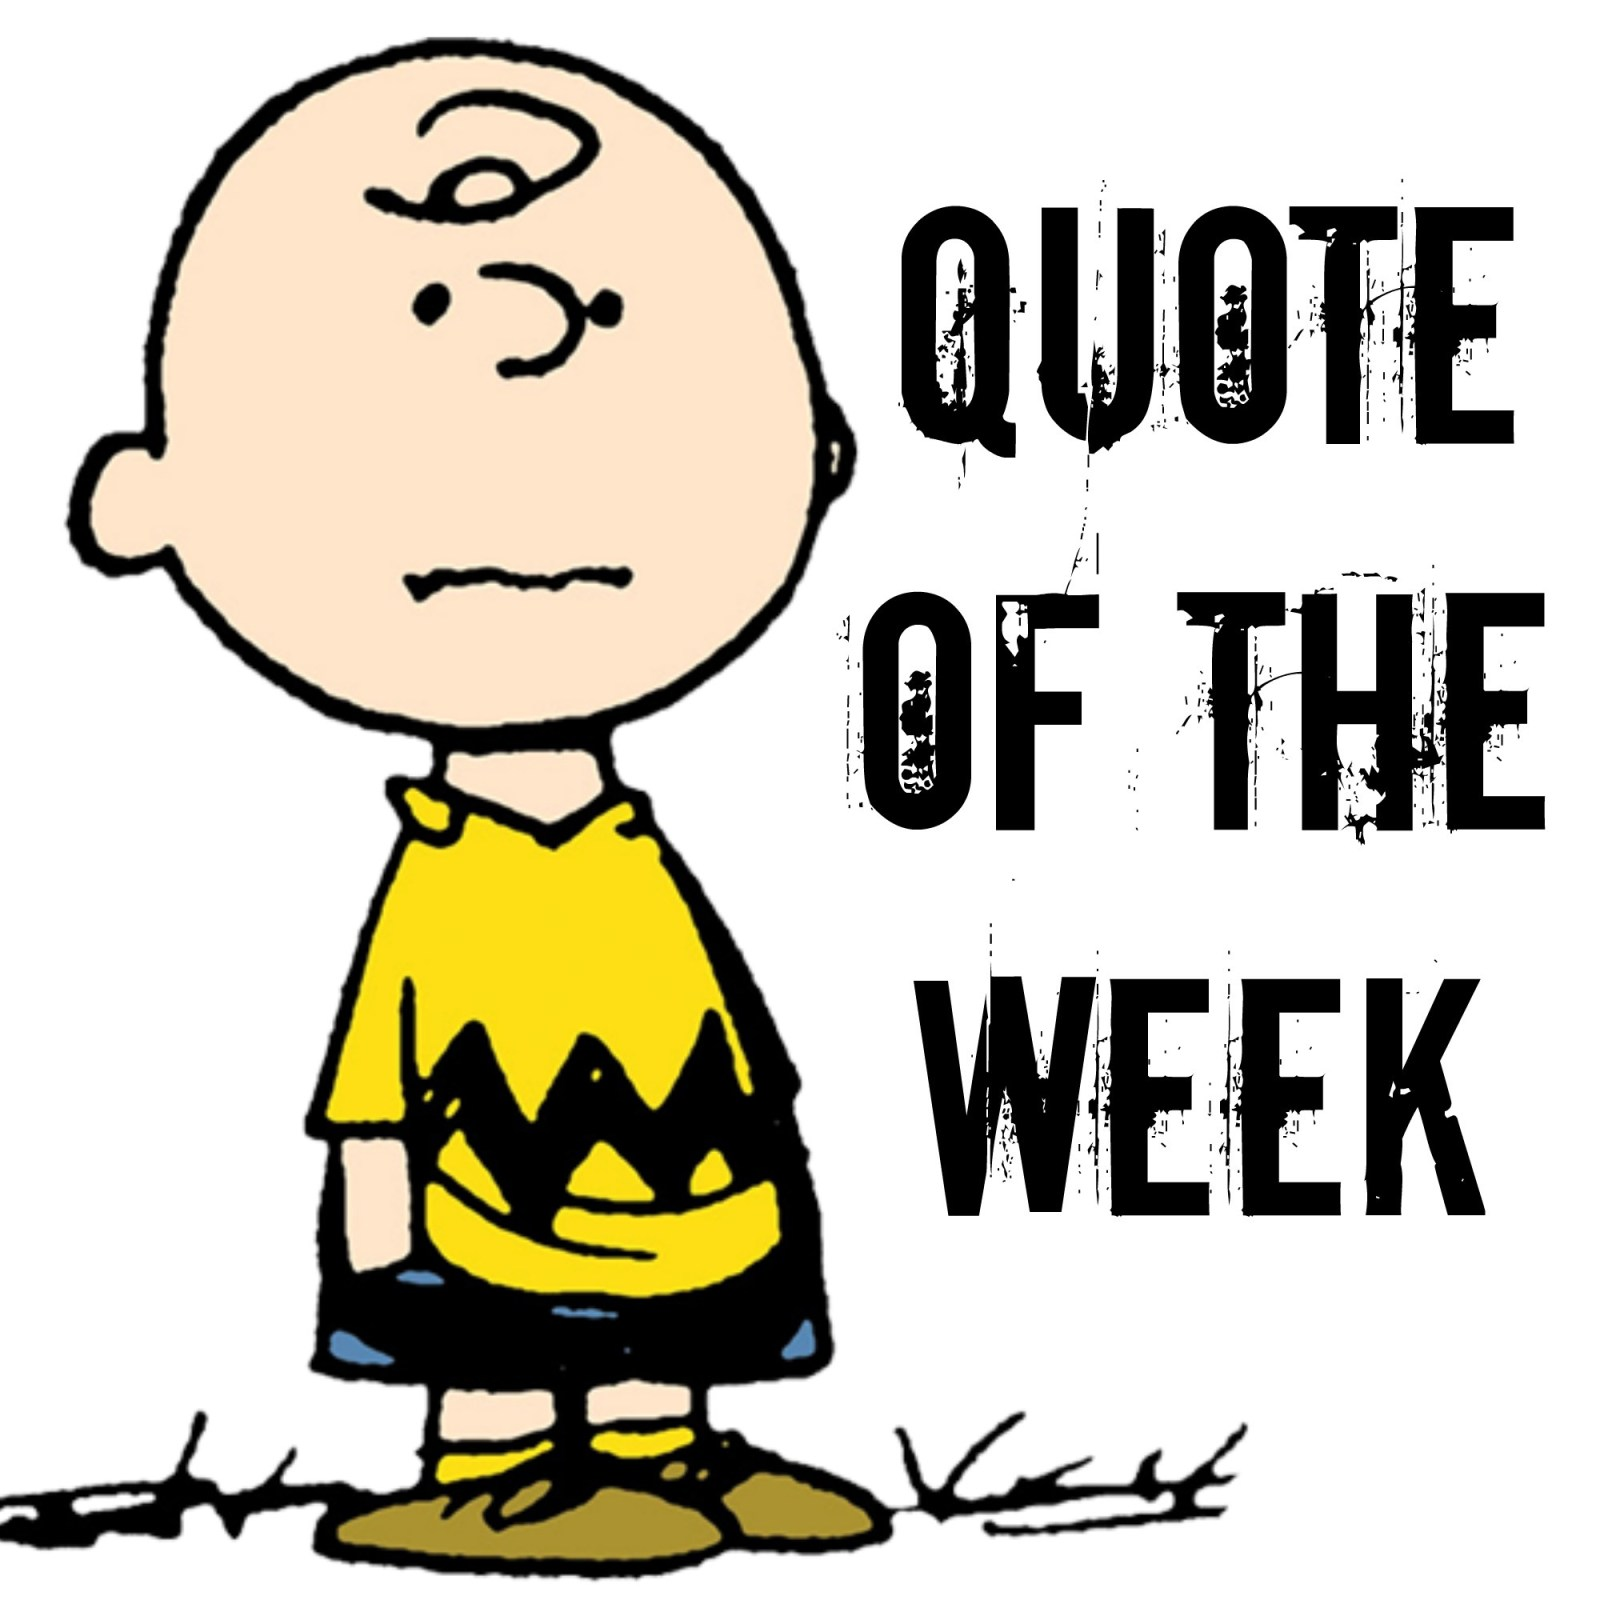 Quotable // from Charles M. Schulz